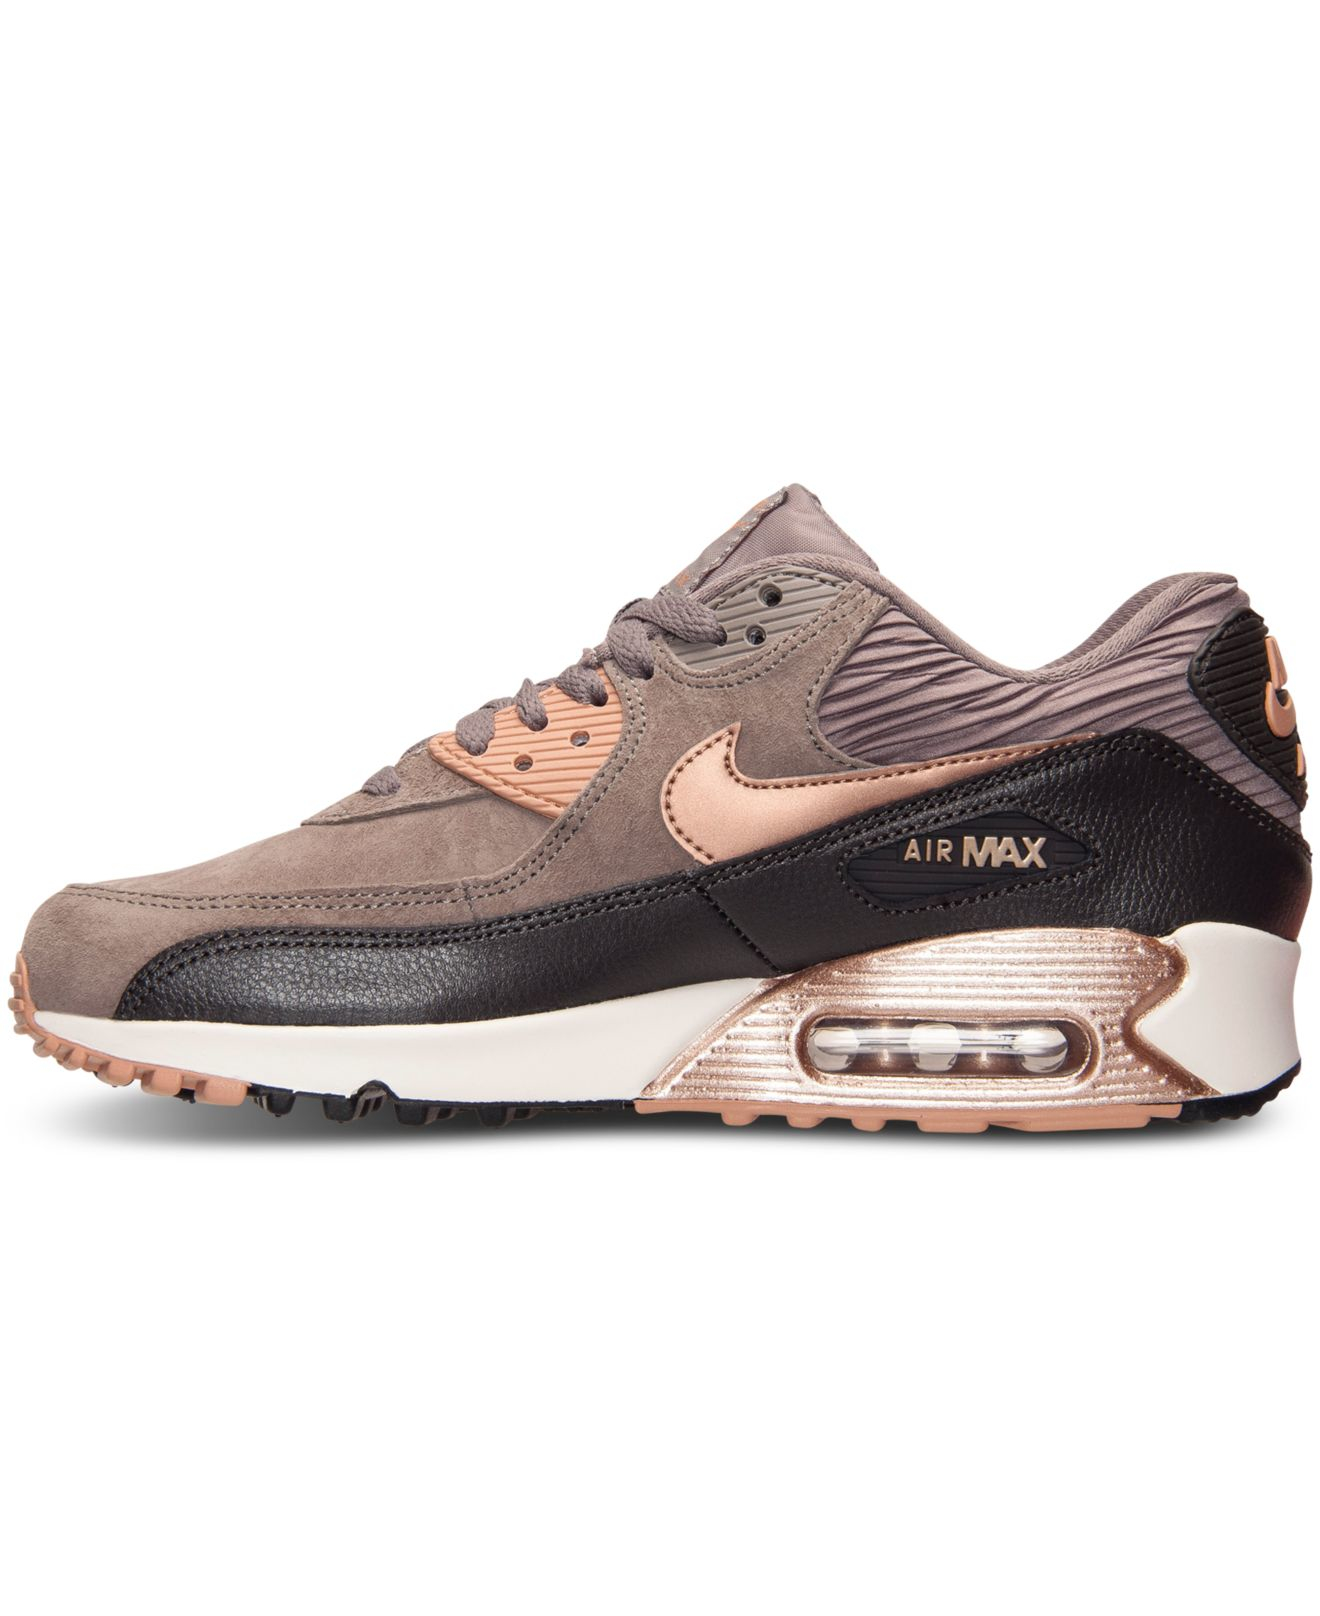 ecb96890f90de Nike Women's Air Max 90 Leather Running Sneakers From Finish Line in ...